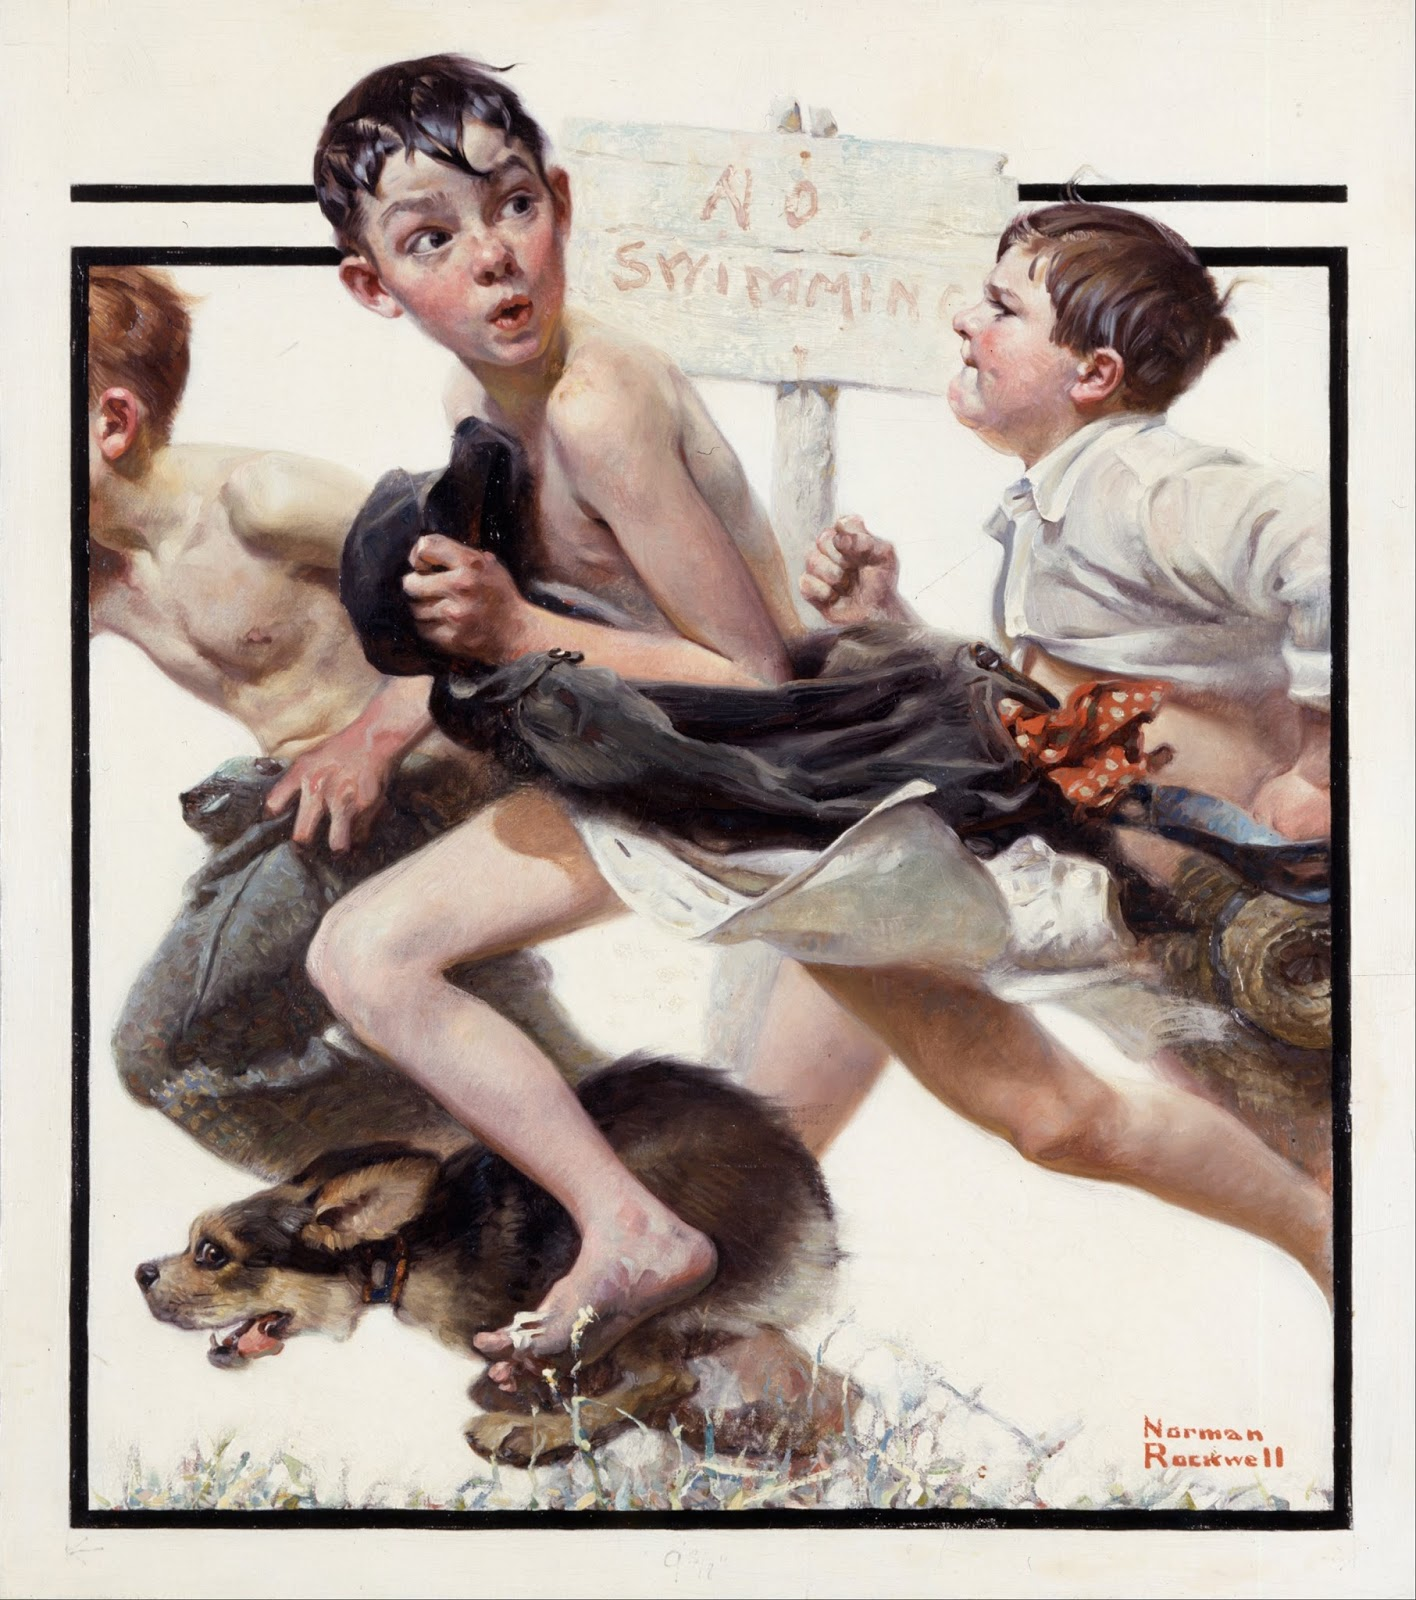 No Swimming Norman Rockwell